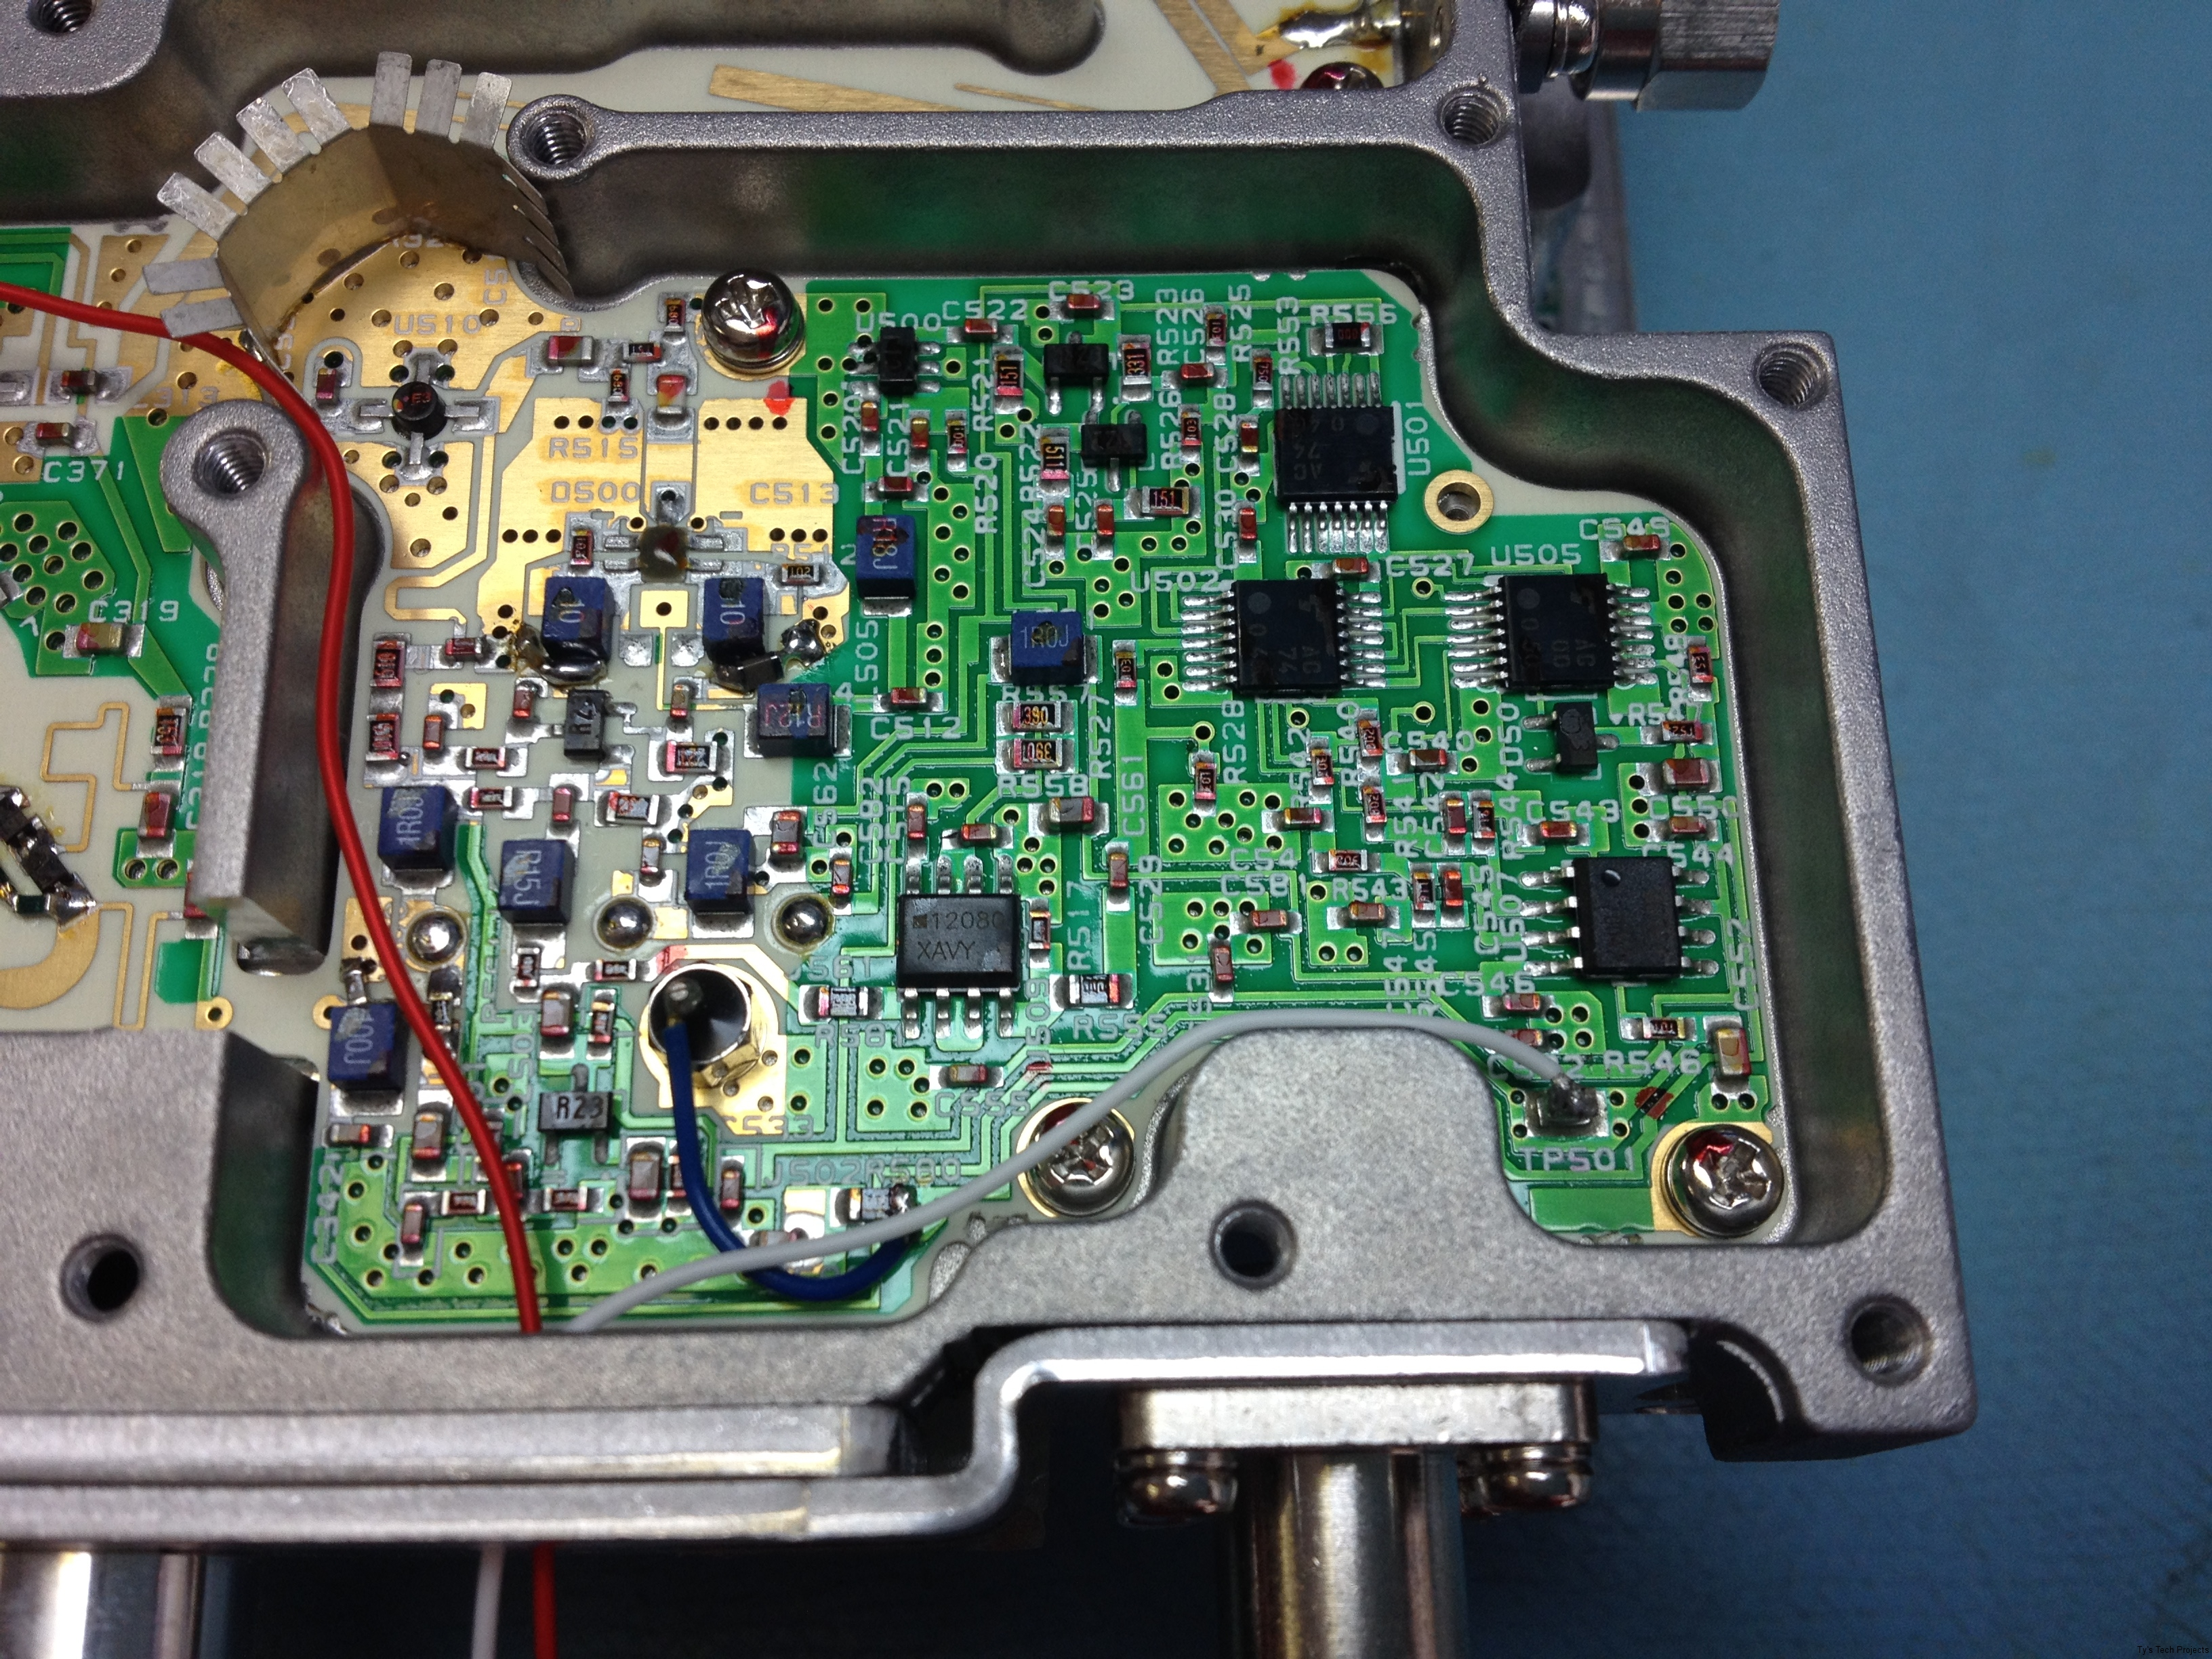 Wire soldered to test point for VCO control feedback